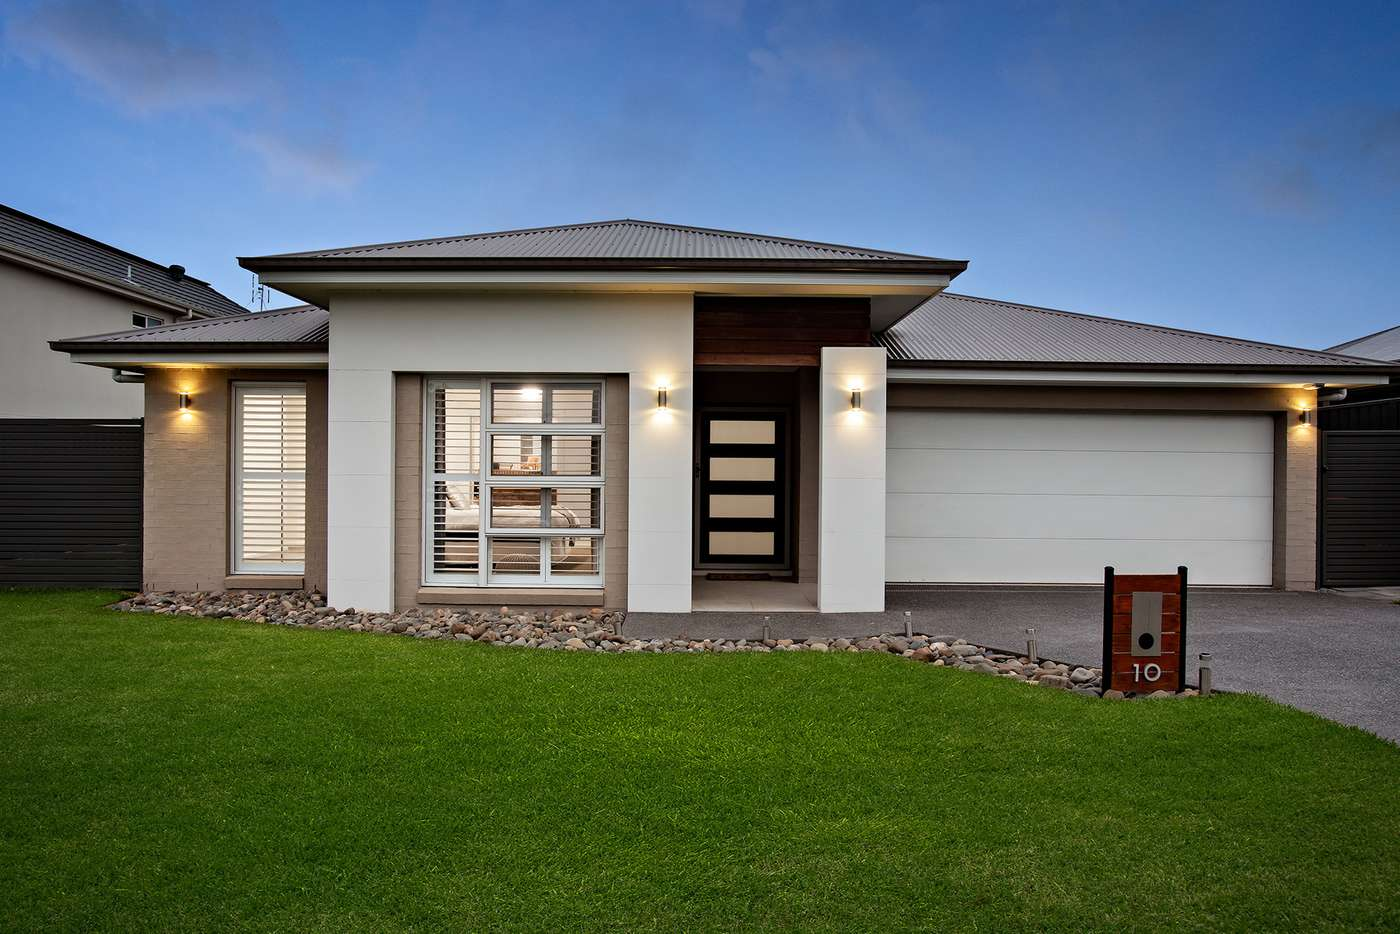 Main view of Homely house listing, 10 Bombay Court, Cameron Park NSW 2285